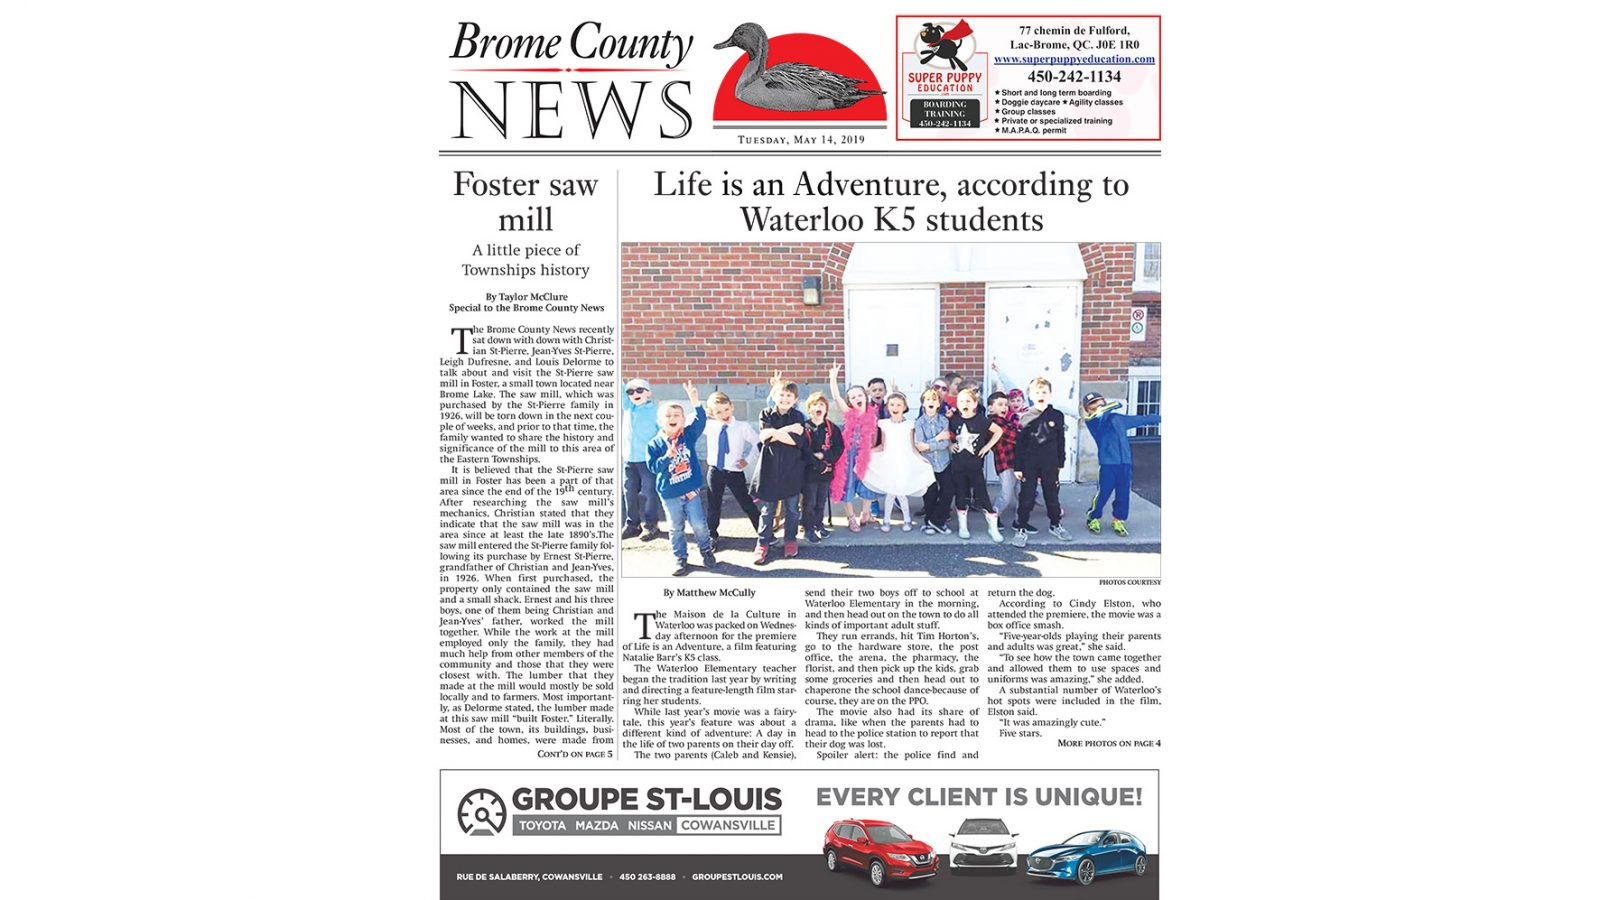 Brome County News – May 14, 2019 edition